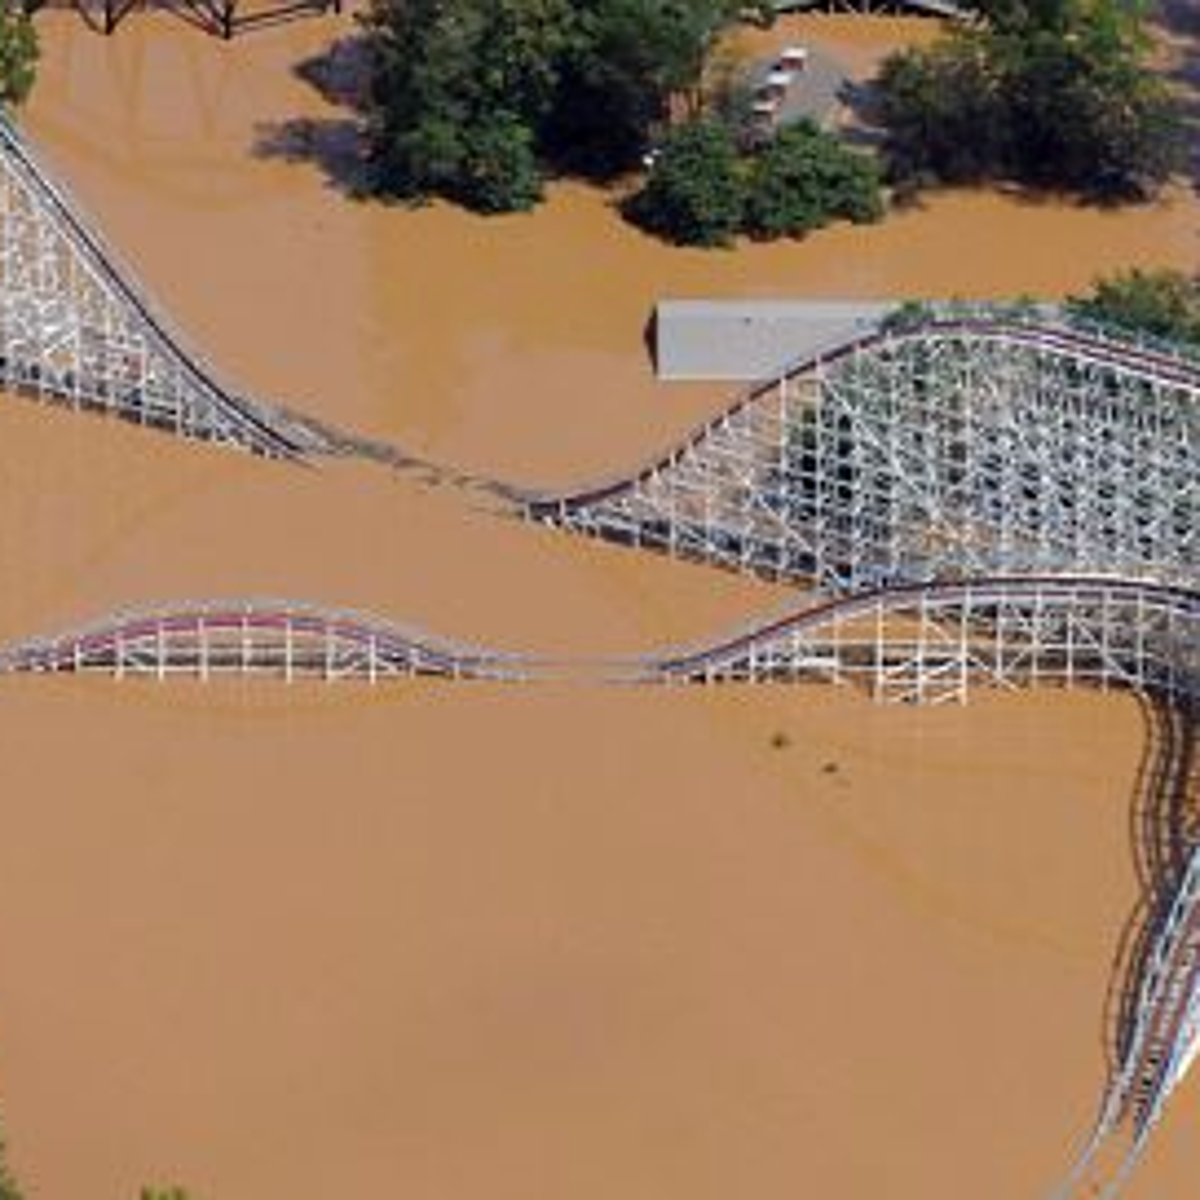 Screamin Eagle Six Flags St Louis Flooded - About Flag